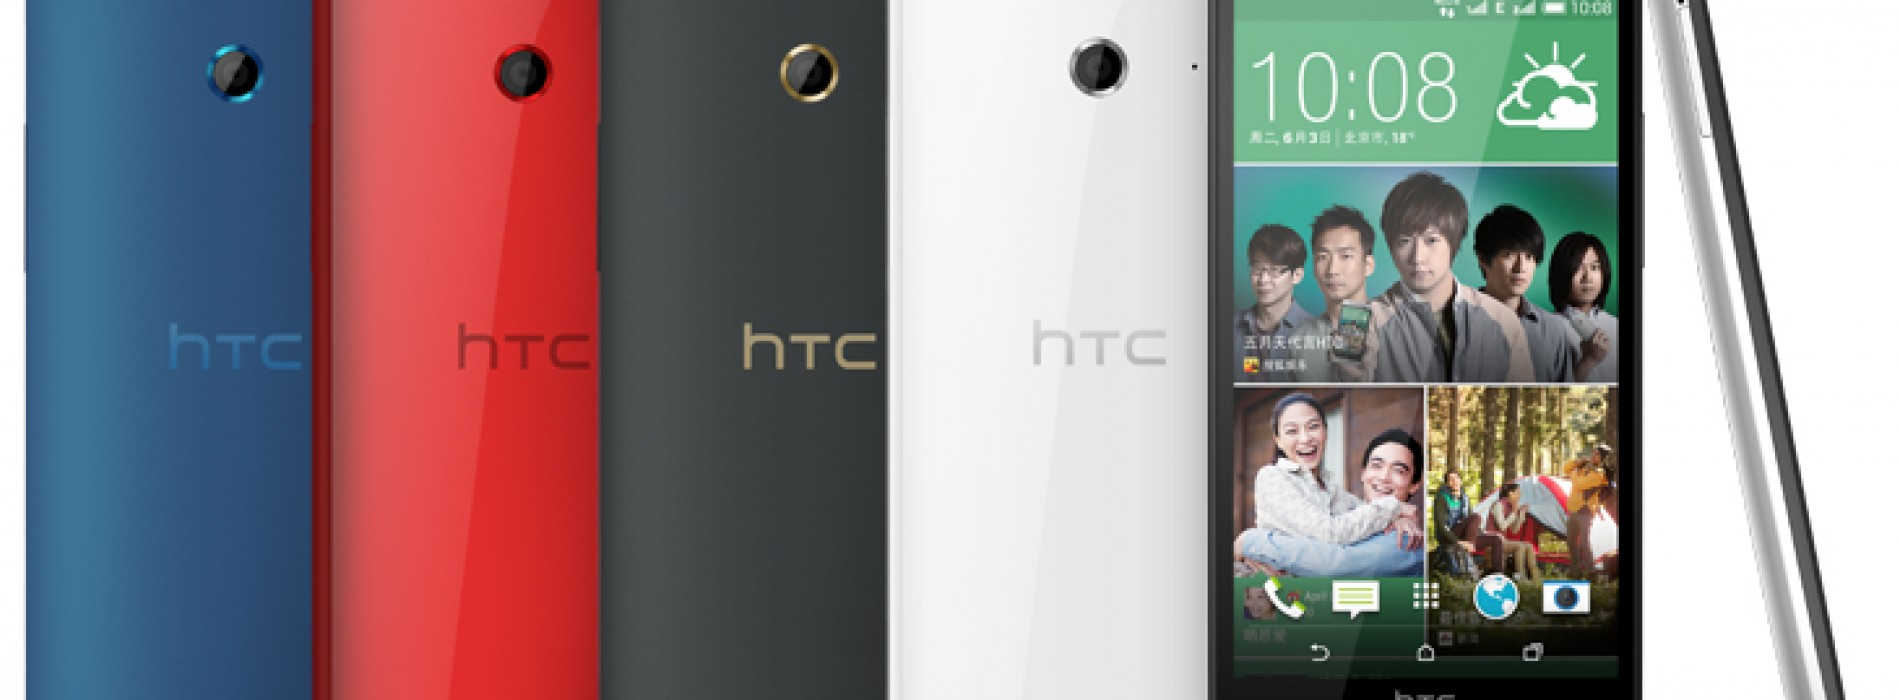 HTC One (E8) announced